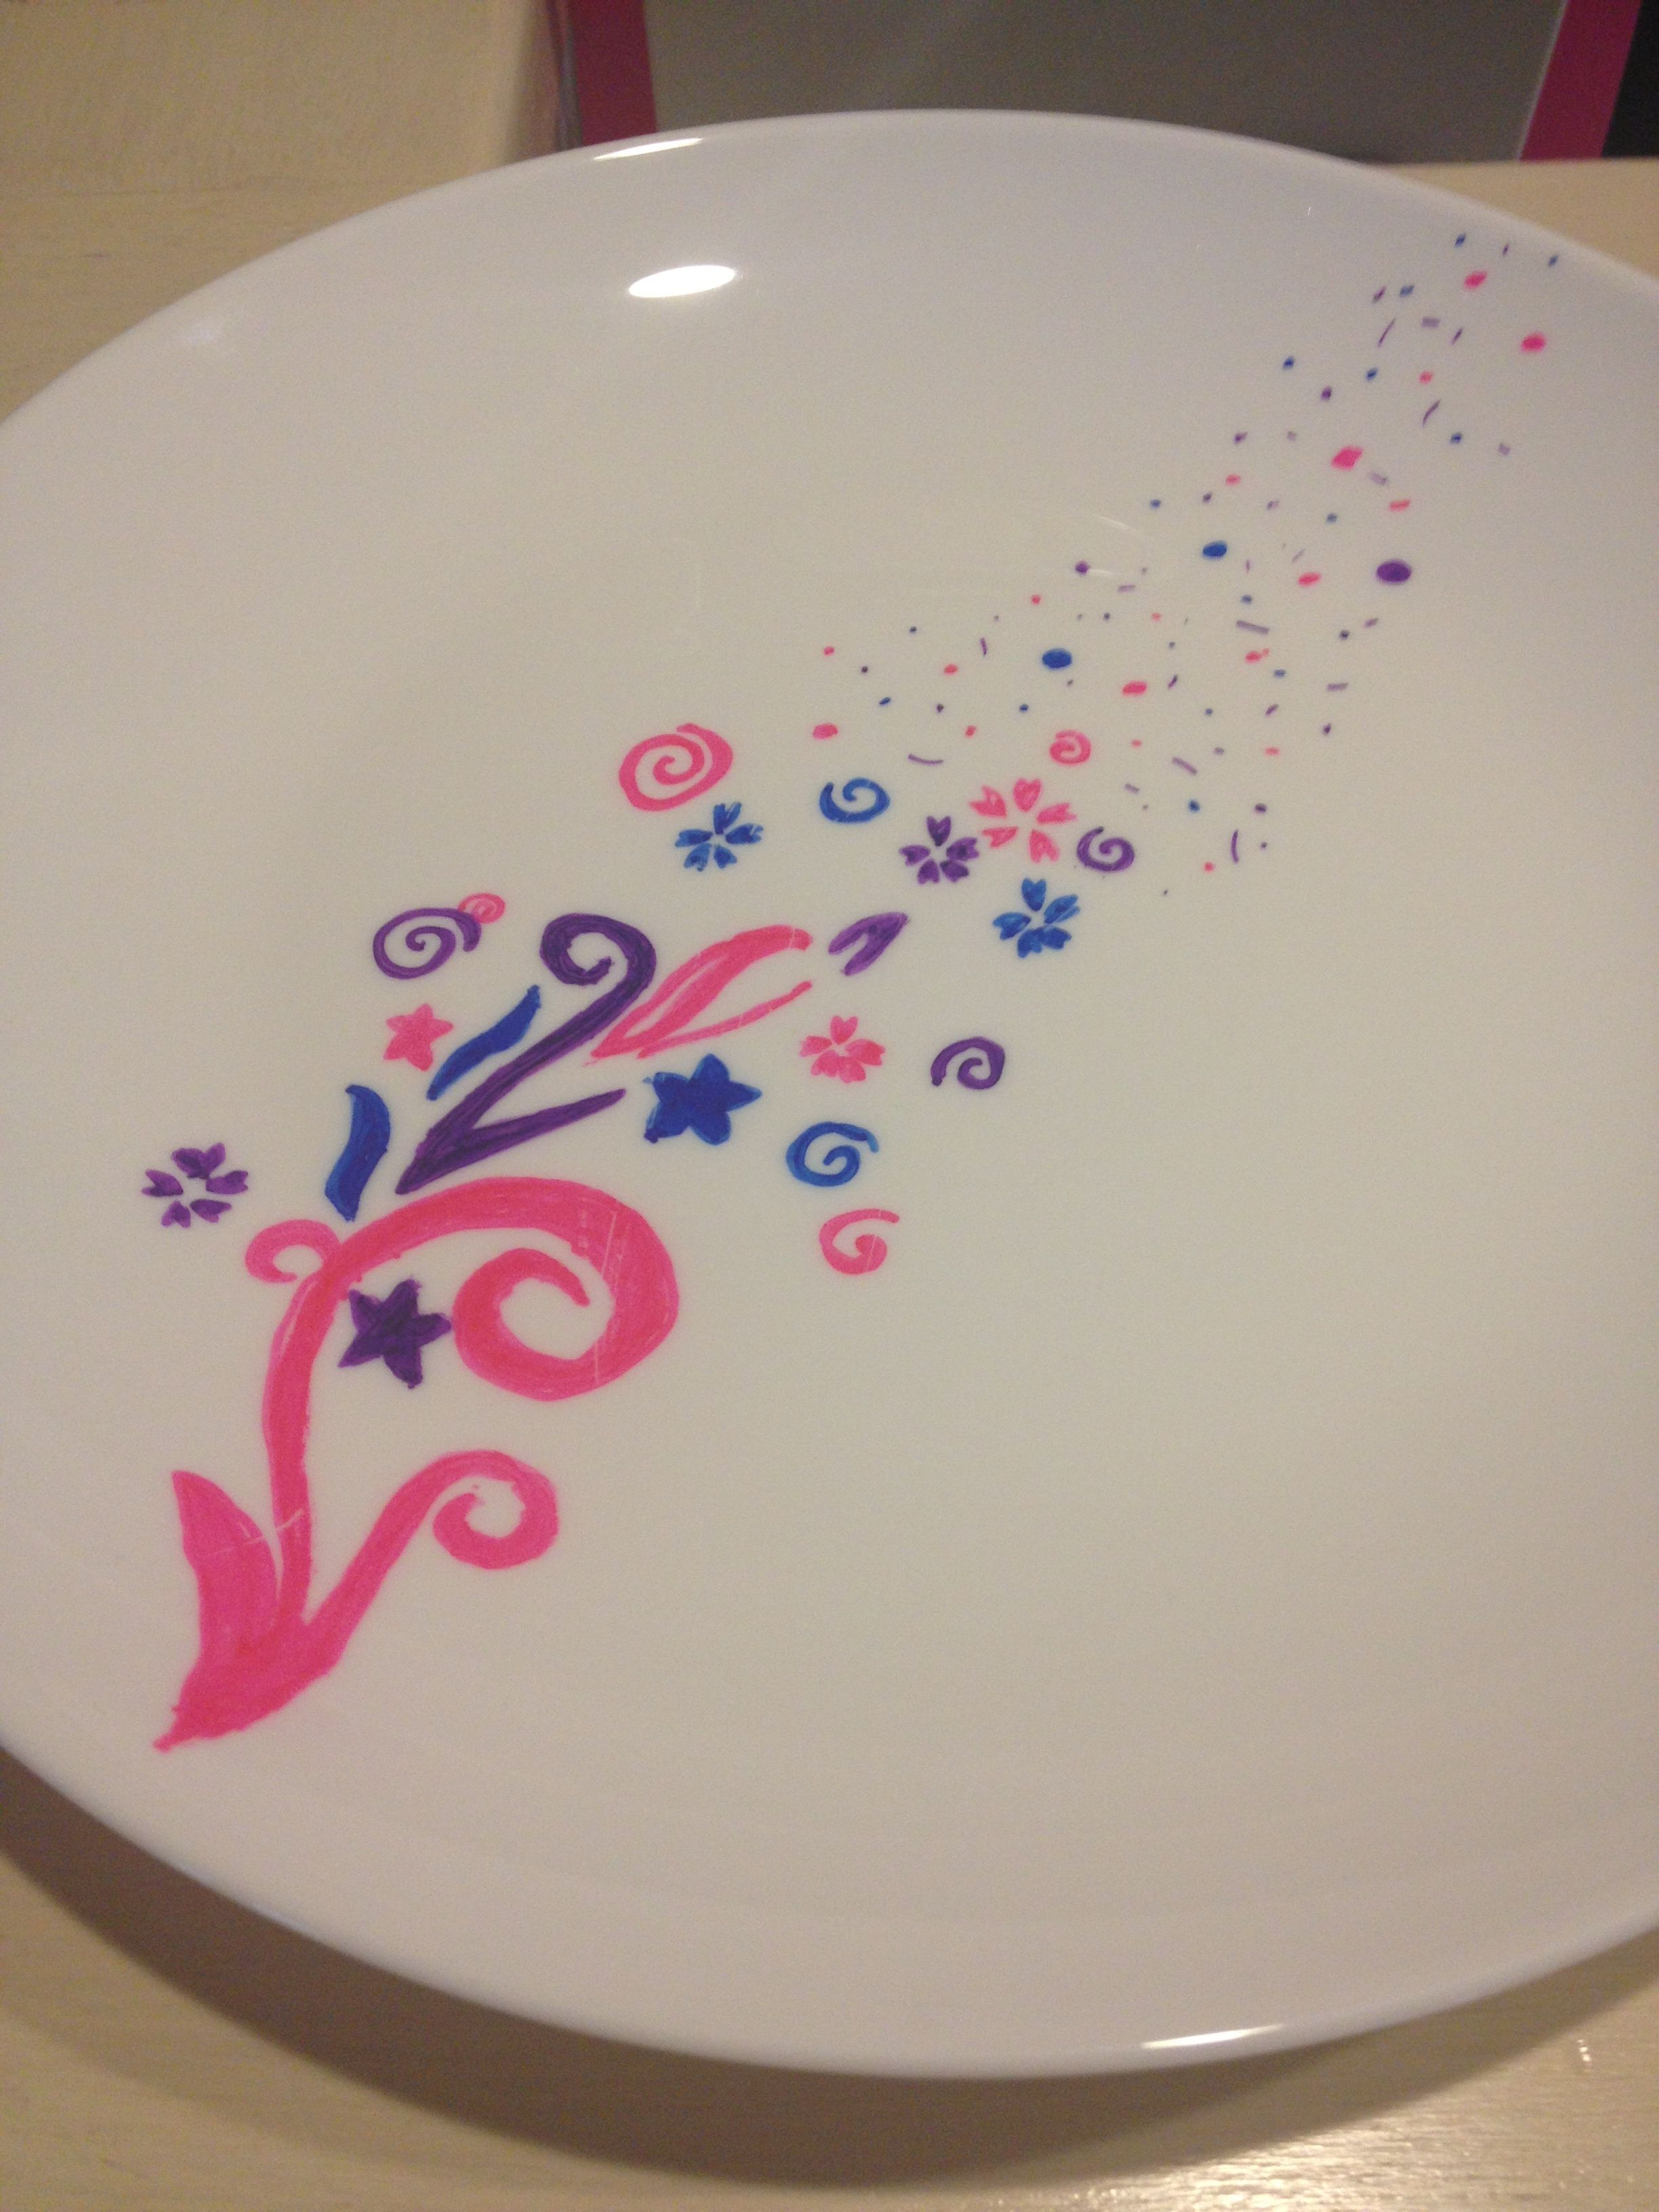 DIY sharpie plate design #sharpieplates DIY sharpie plate design #sharpieplates DIY sharpie plate design #sharpieplates DIY sharpie plate design #sharpieplates DIY sharpie plate design #sharpieplates DIY sharpie plate design #sharpieplates DIY sharpie plate design #sharpieplates DIY sharpie plate design #sharpieplates